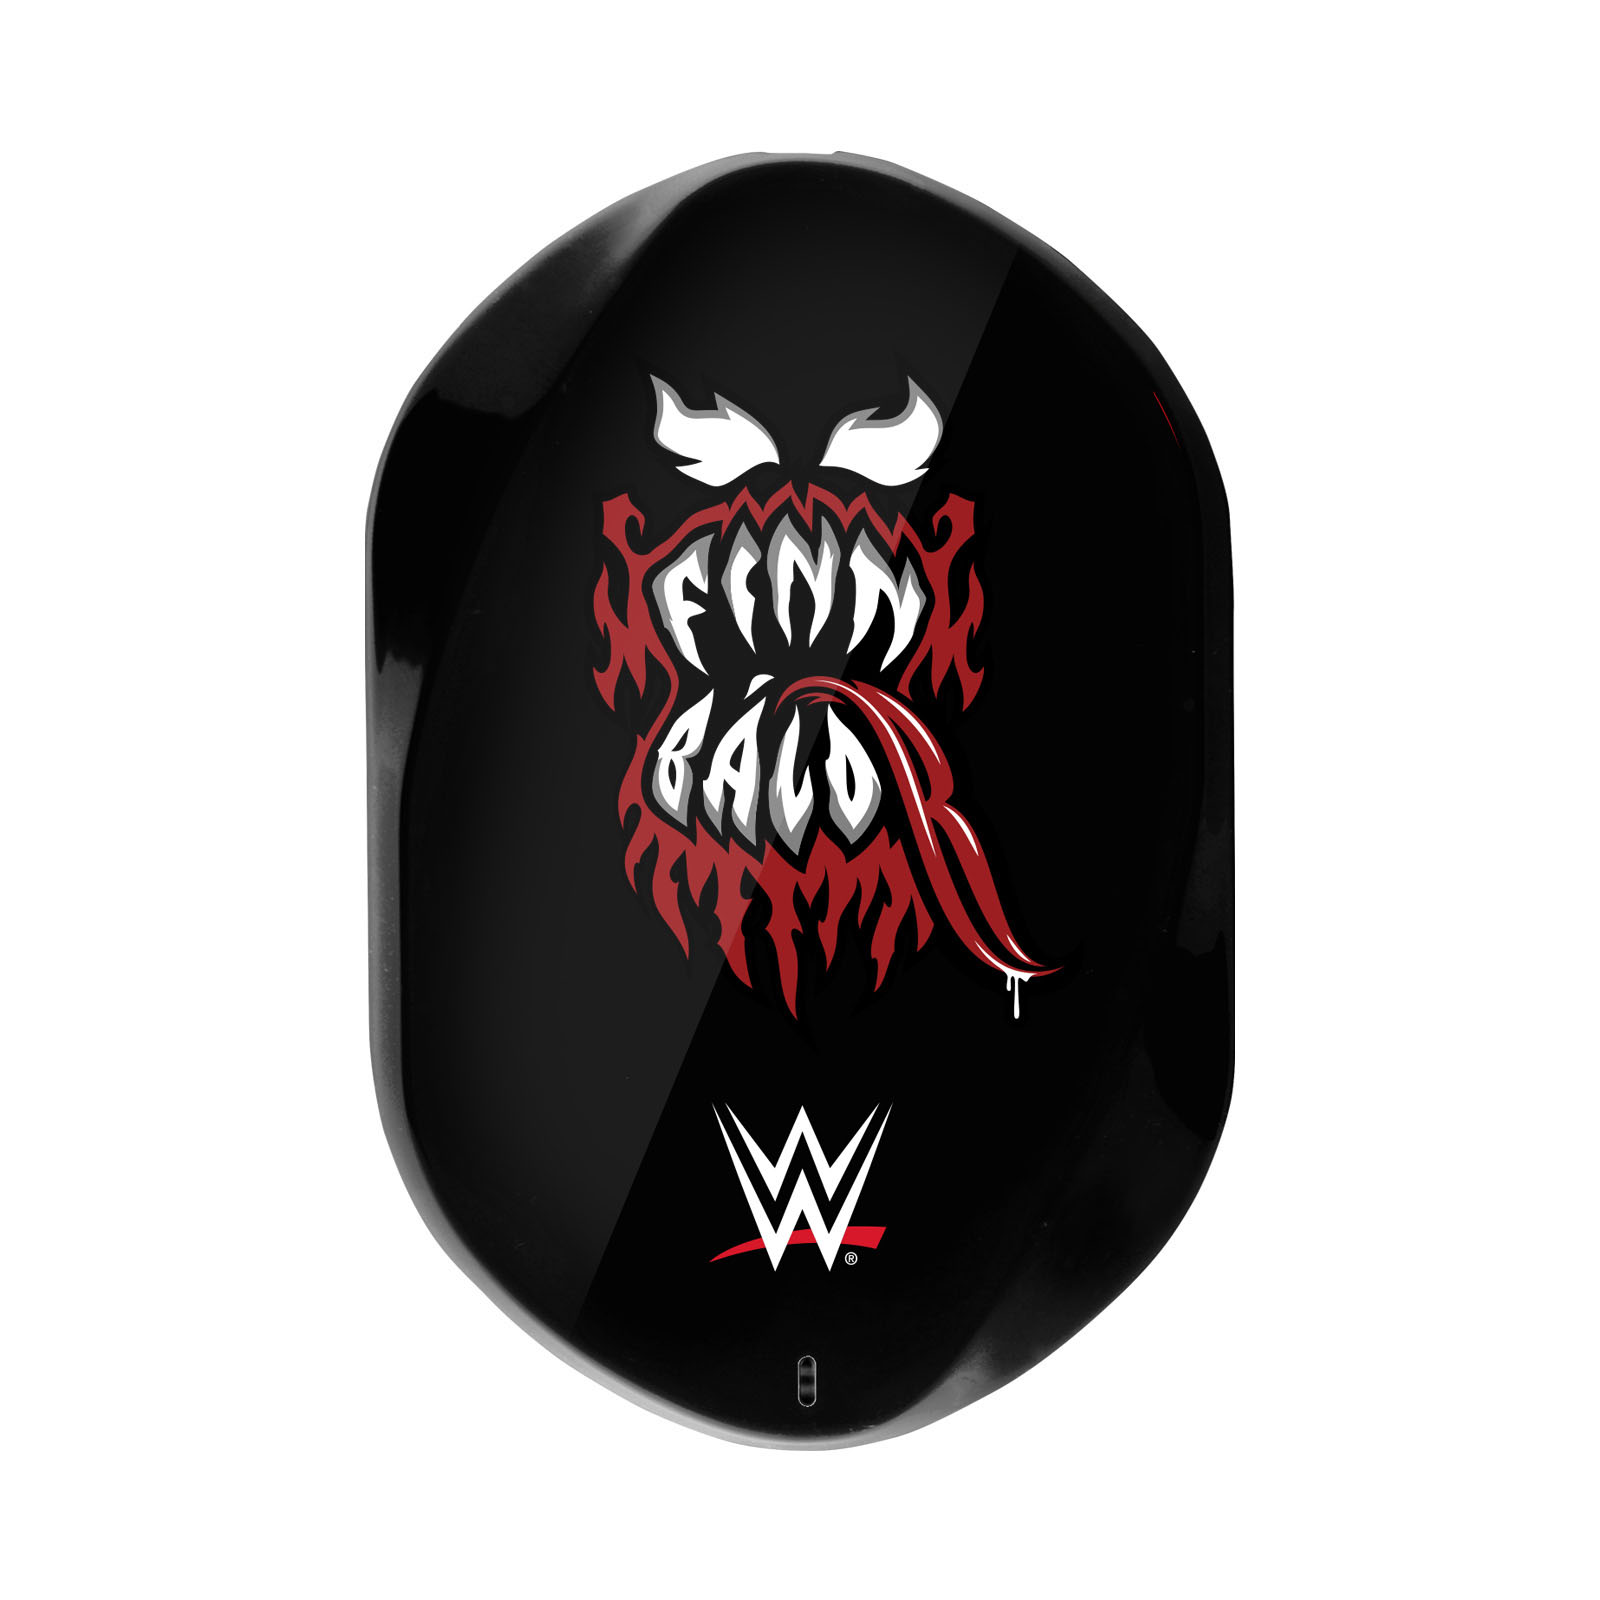 OFFICIAL-WWE-SUPERSTARS-GRAPHIC-BLACK-QI-FAST-WIRELESS-CHARGER thumbnail 19